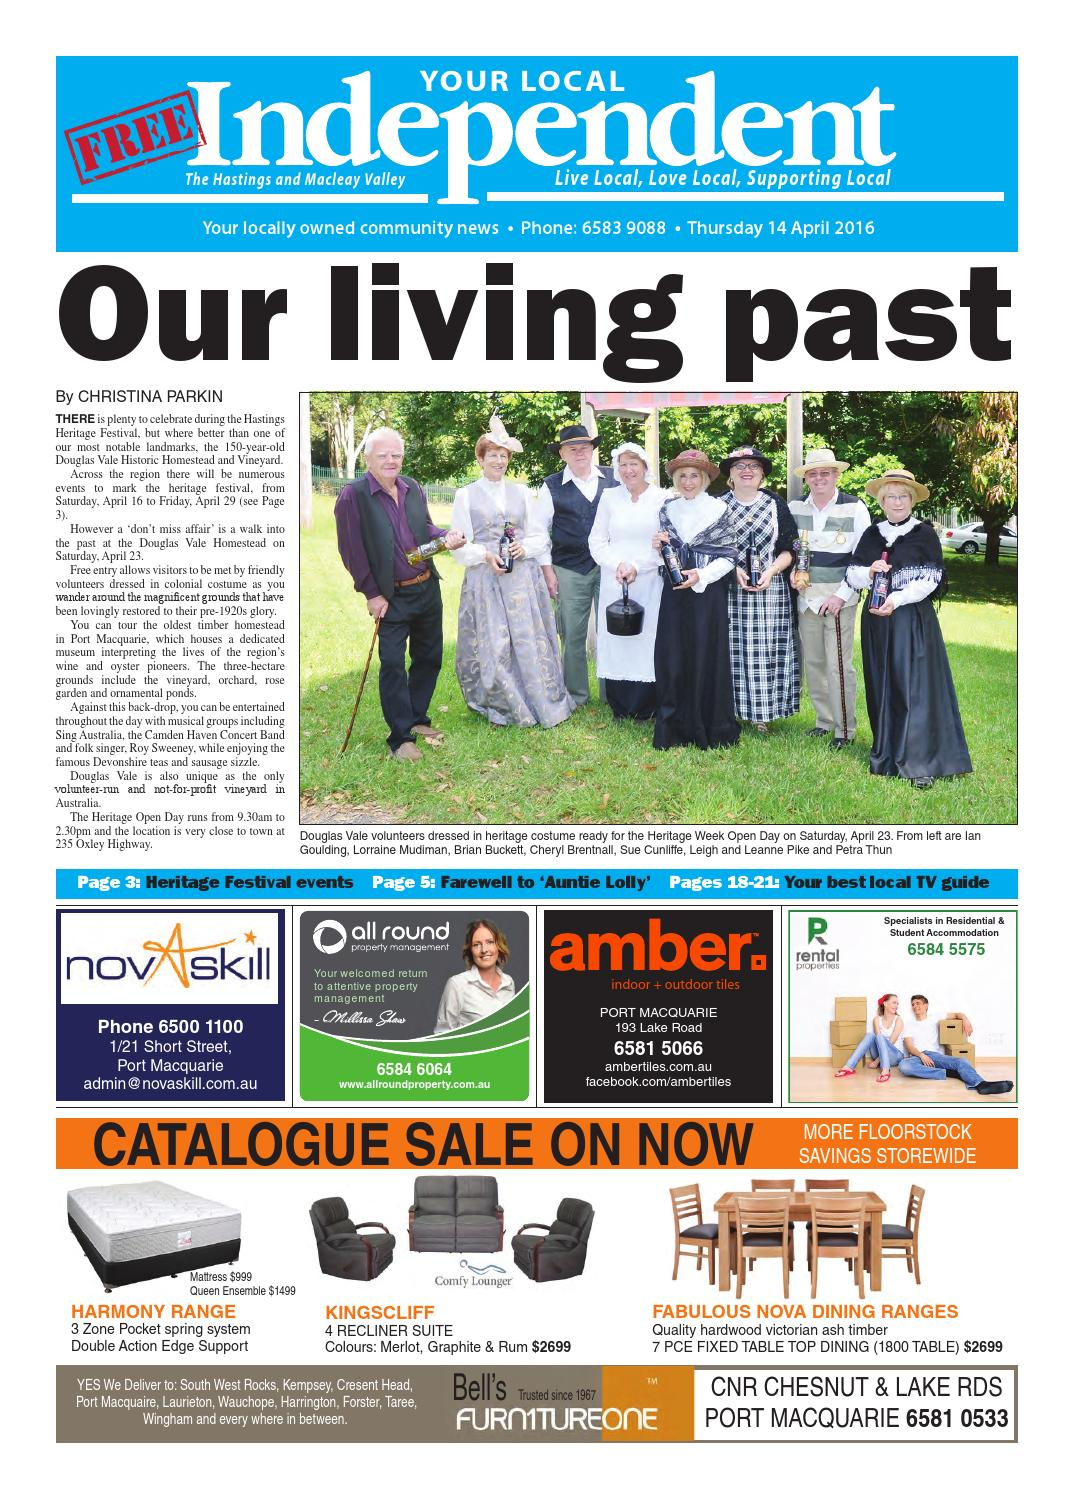 Your Local Independent 14 April 2016 By